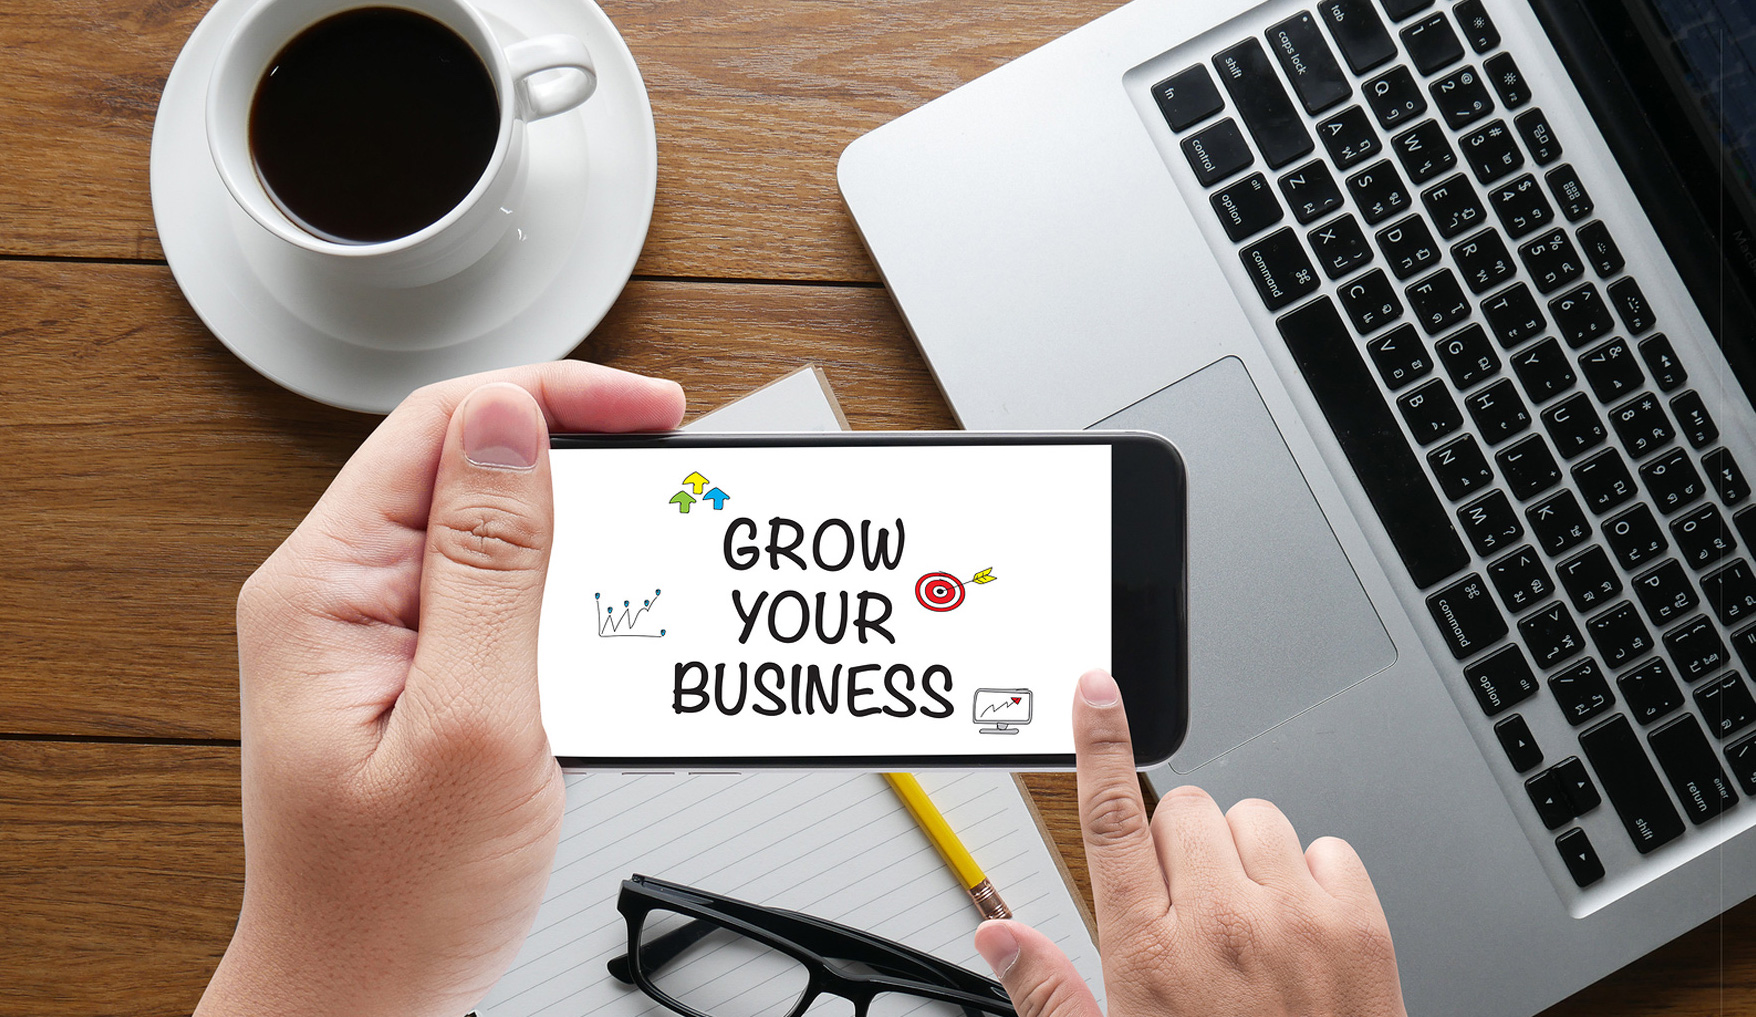 All about doing business online